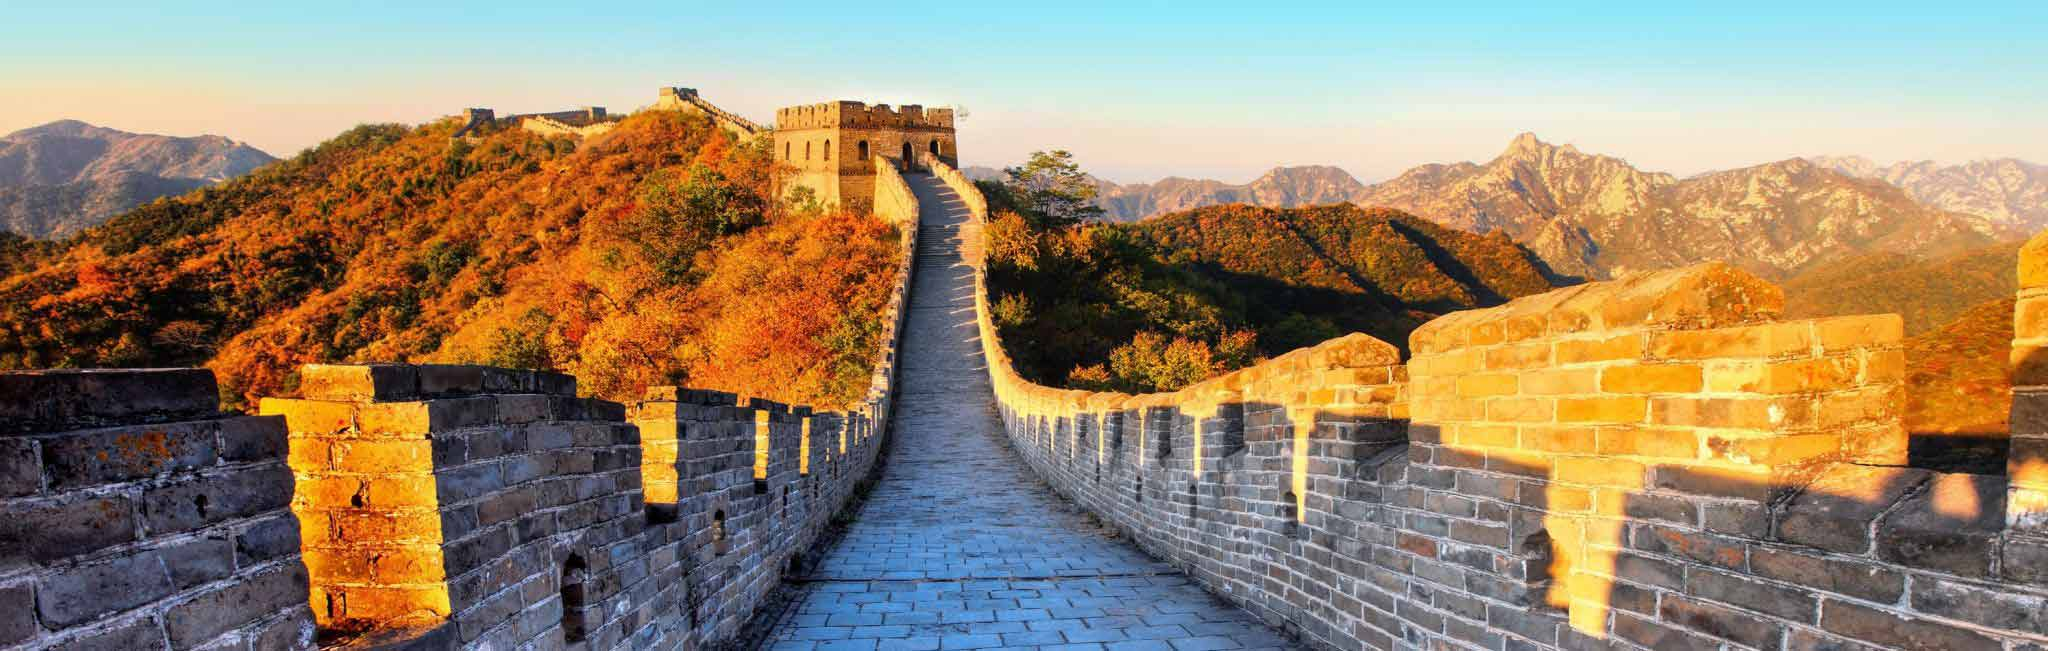 China Tour of The Great Wall in Autumn